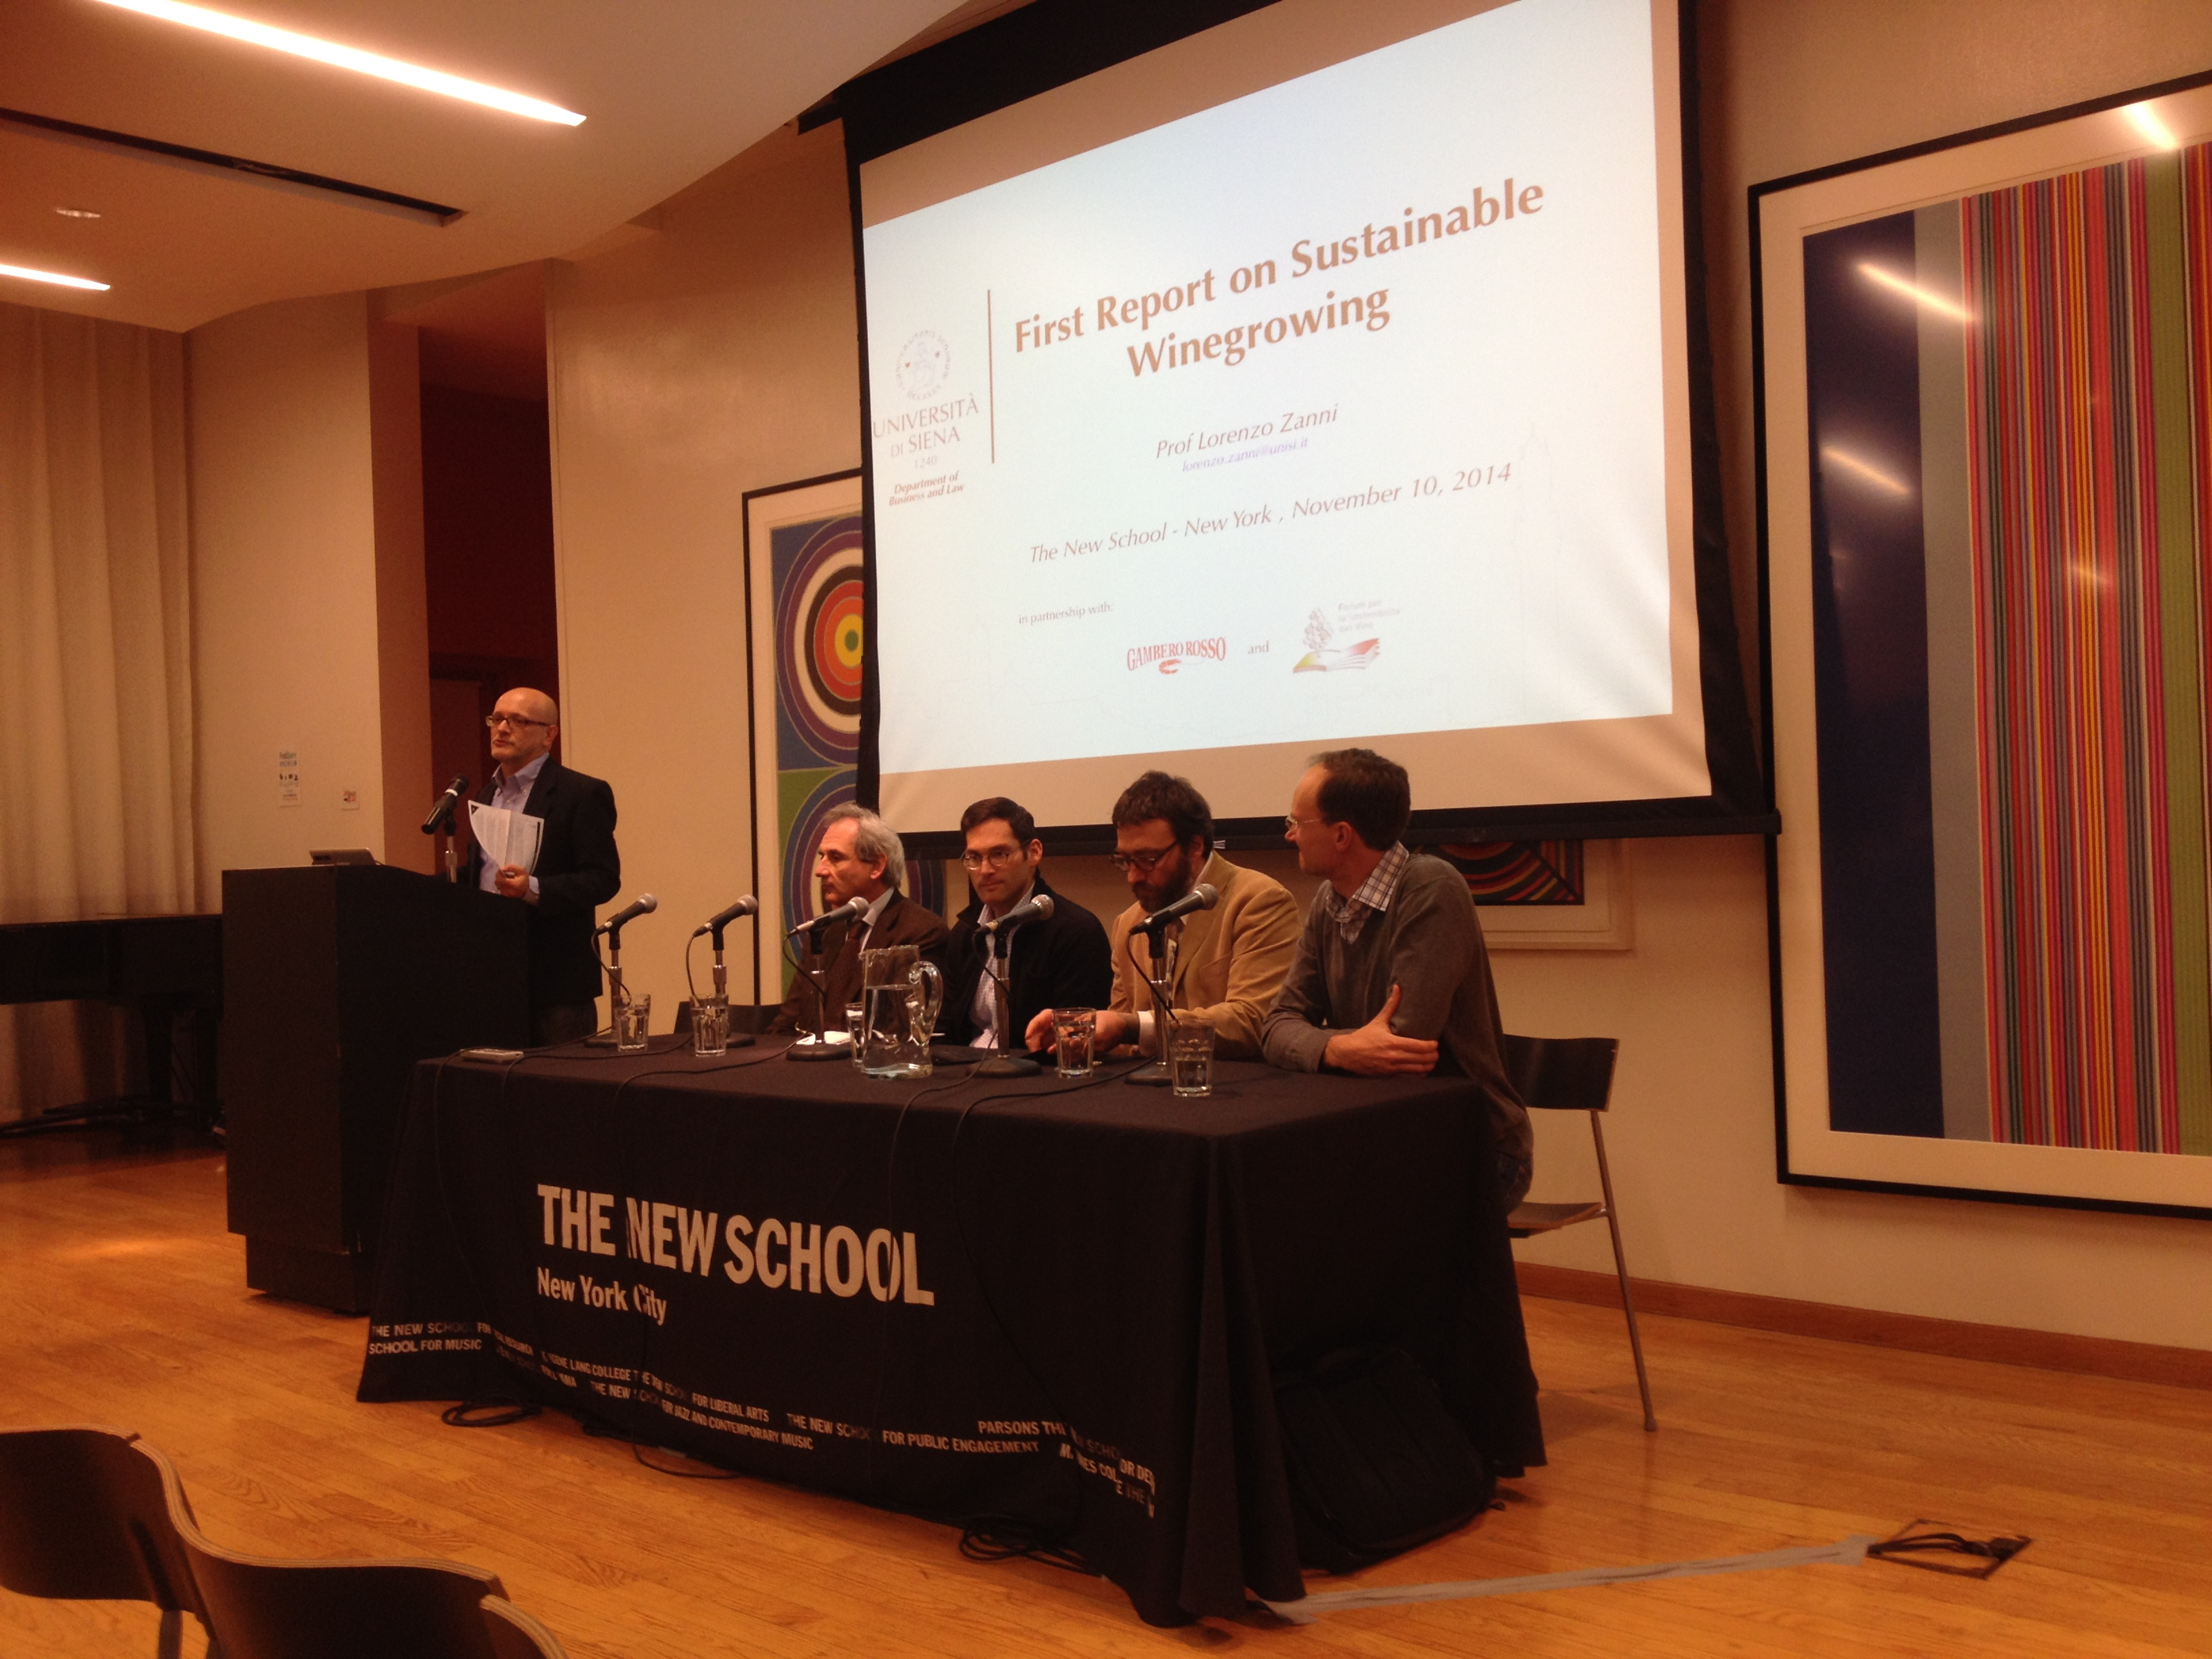 La presentazione del Rapporto alla New School for Public Engagement di New York.